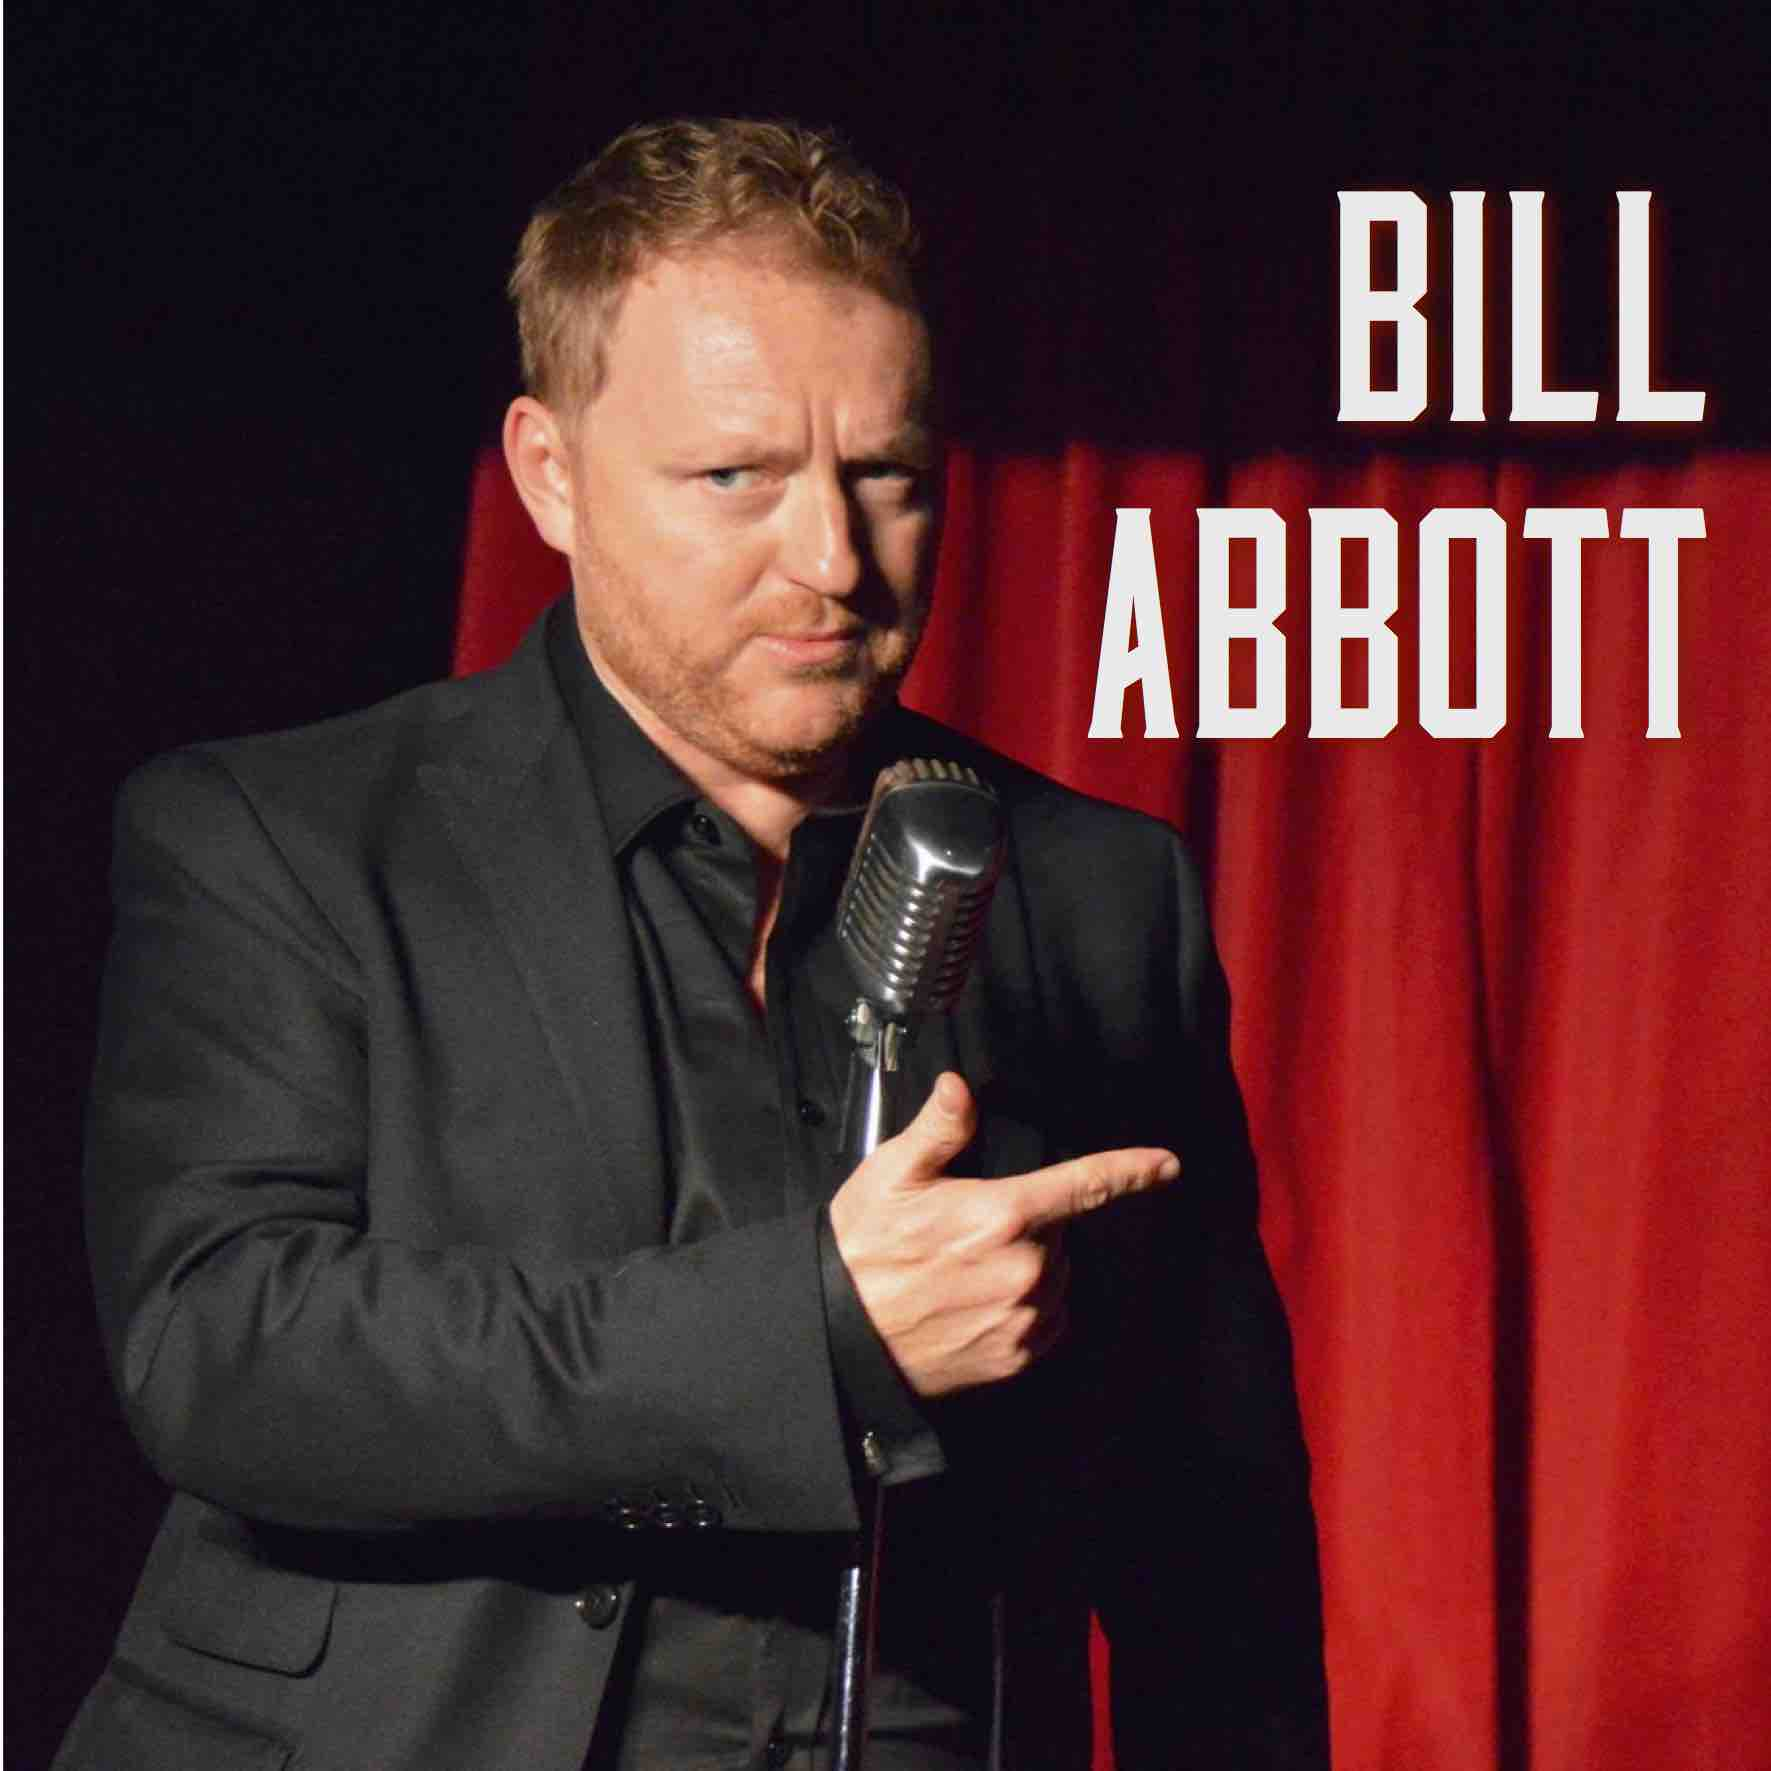 Abbott-Bill.jpg